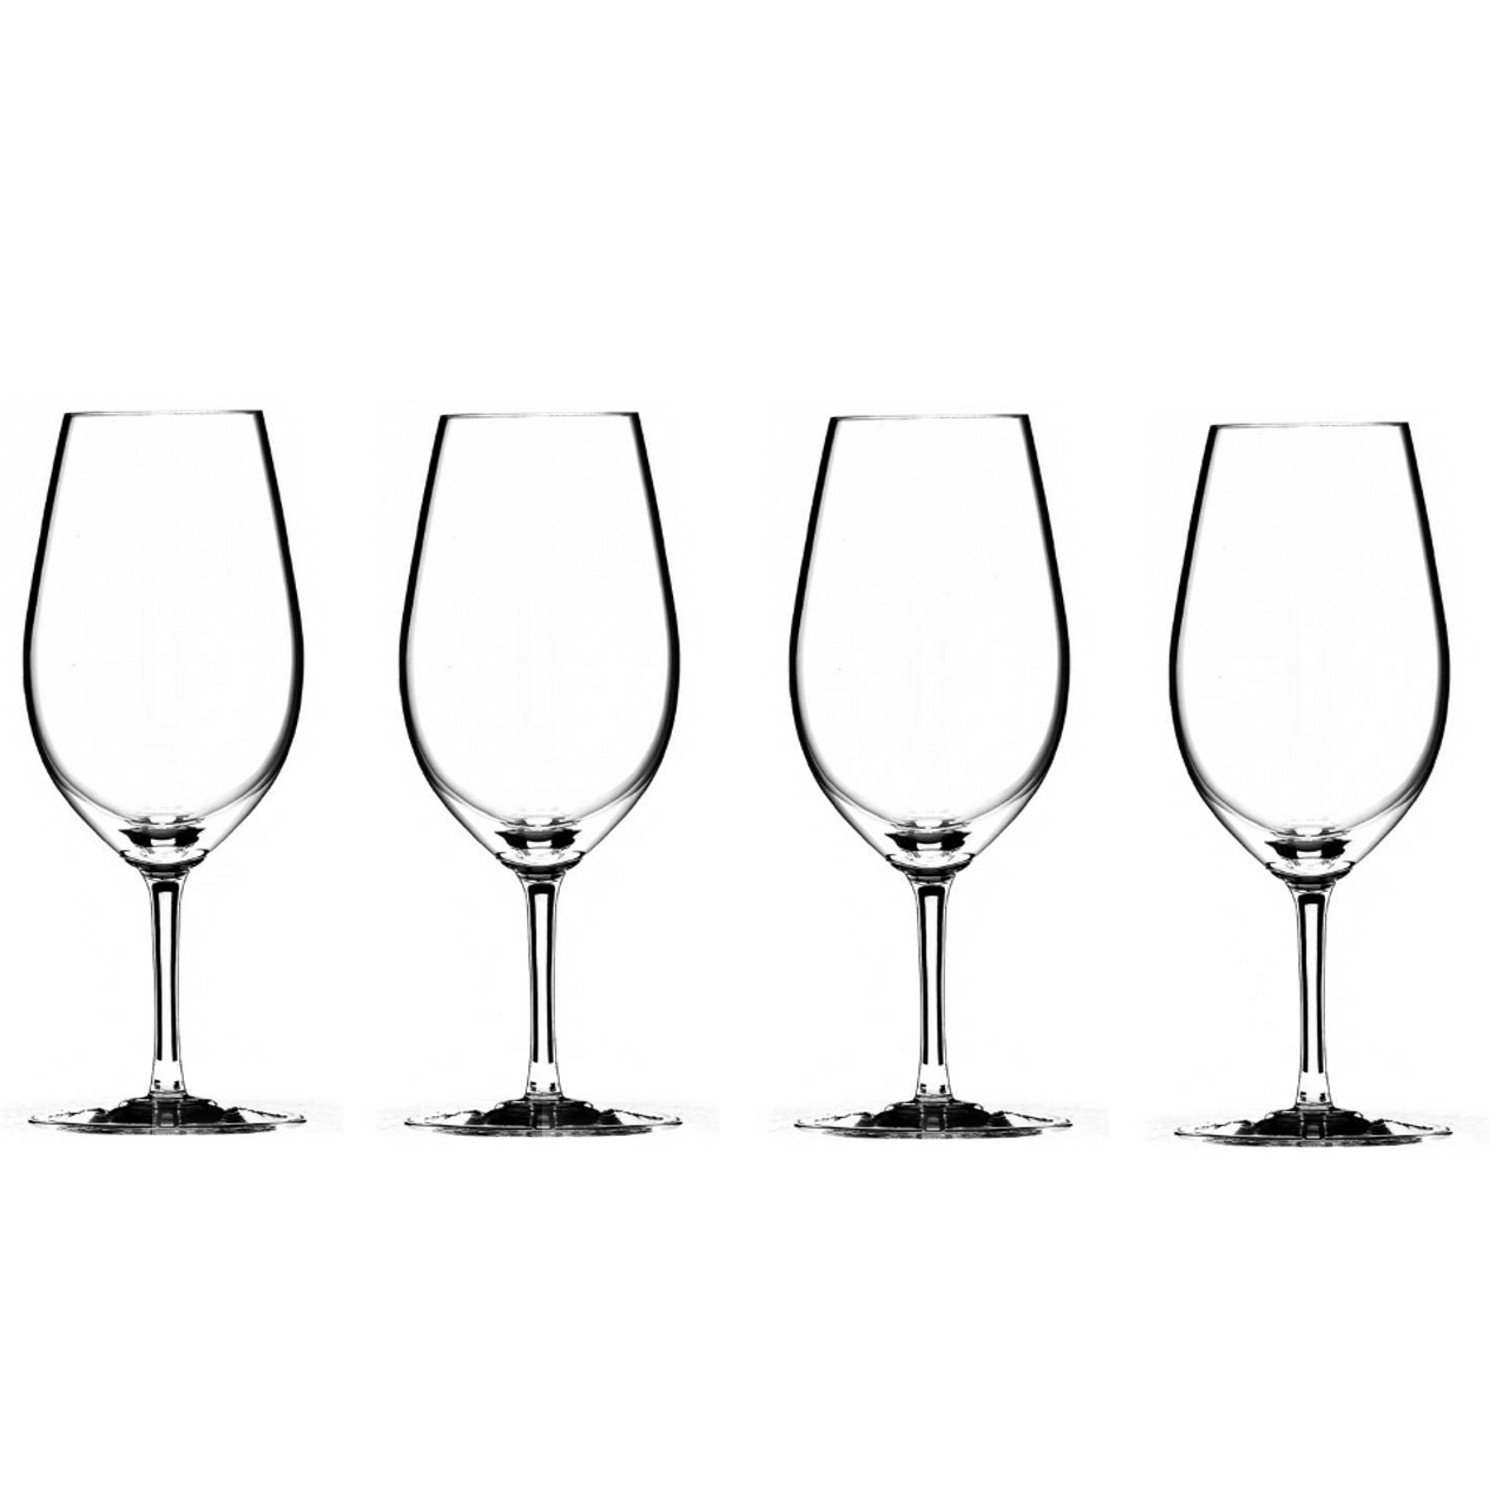 Riedel Sommeliers Leaded Crystal Vintage Port Glass, Set of 4 by Riedel